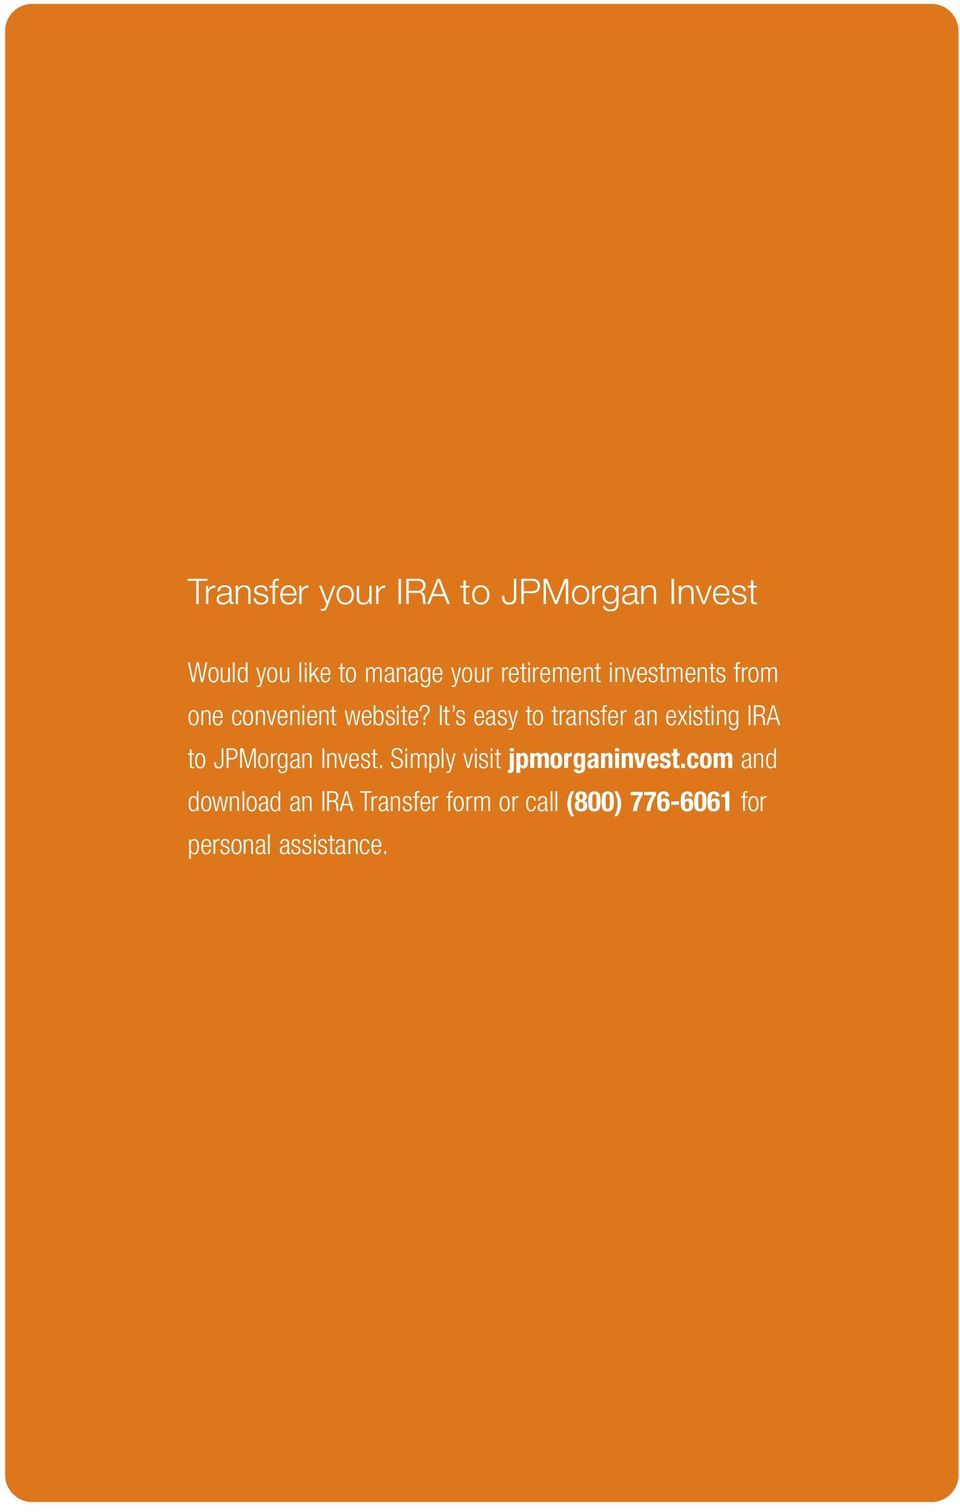 It s easy to transfer an existing IRA to JPMorgan Invest.